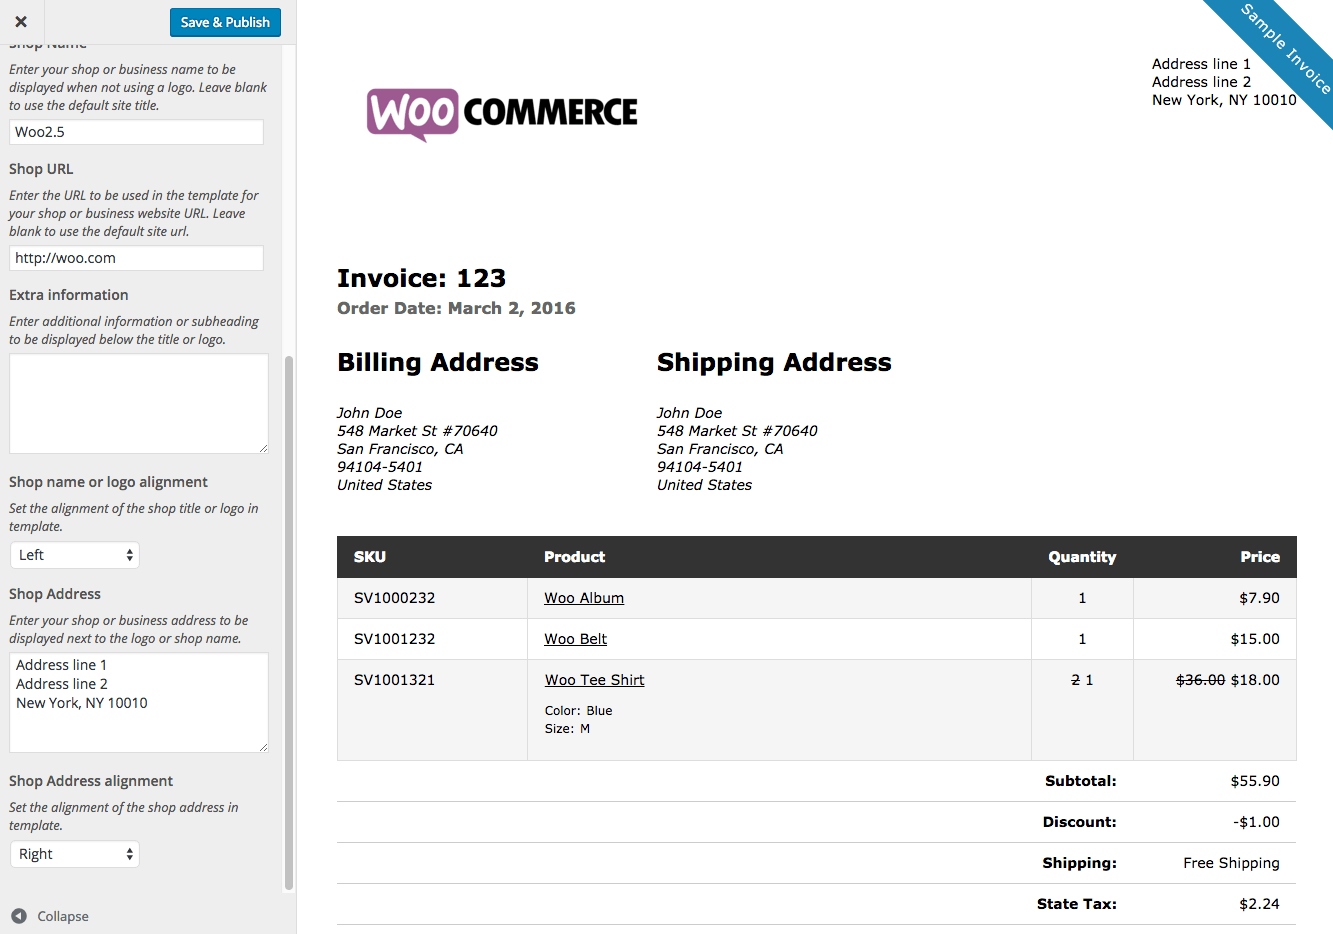 Ebitus  Winsome Woocommerce Print Invoices Amp Packing Lists  Woocommerce Docs With Remarkable Woocommerce Print Invoices  Packing Lists Customizer With Astonishing New Mexico Gross Receipts Tax Rates Also Returning Clothes Without Receipt In Addition Payment Receipt Book And Print A Fake Receipt As Well As Seneca College Tax Receipt Additionally Receipt Template For Word From Docswoocommercecom With Ebitus  Remarkable Woocommerce Print Invoices Amp Packing Lists  Woocommerce Docs With Astonishing Woocommerce Print Invoices  Packing Lists Customizer And Winsome New Mexico Gross Receipts Tax Rates Also Returning Clothes Without Receipt In Addition Payment Receipt Book From Docswoocommercecom